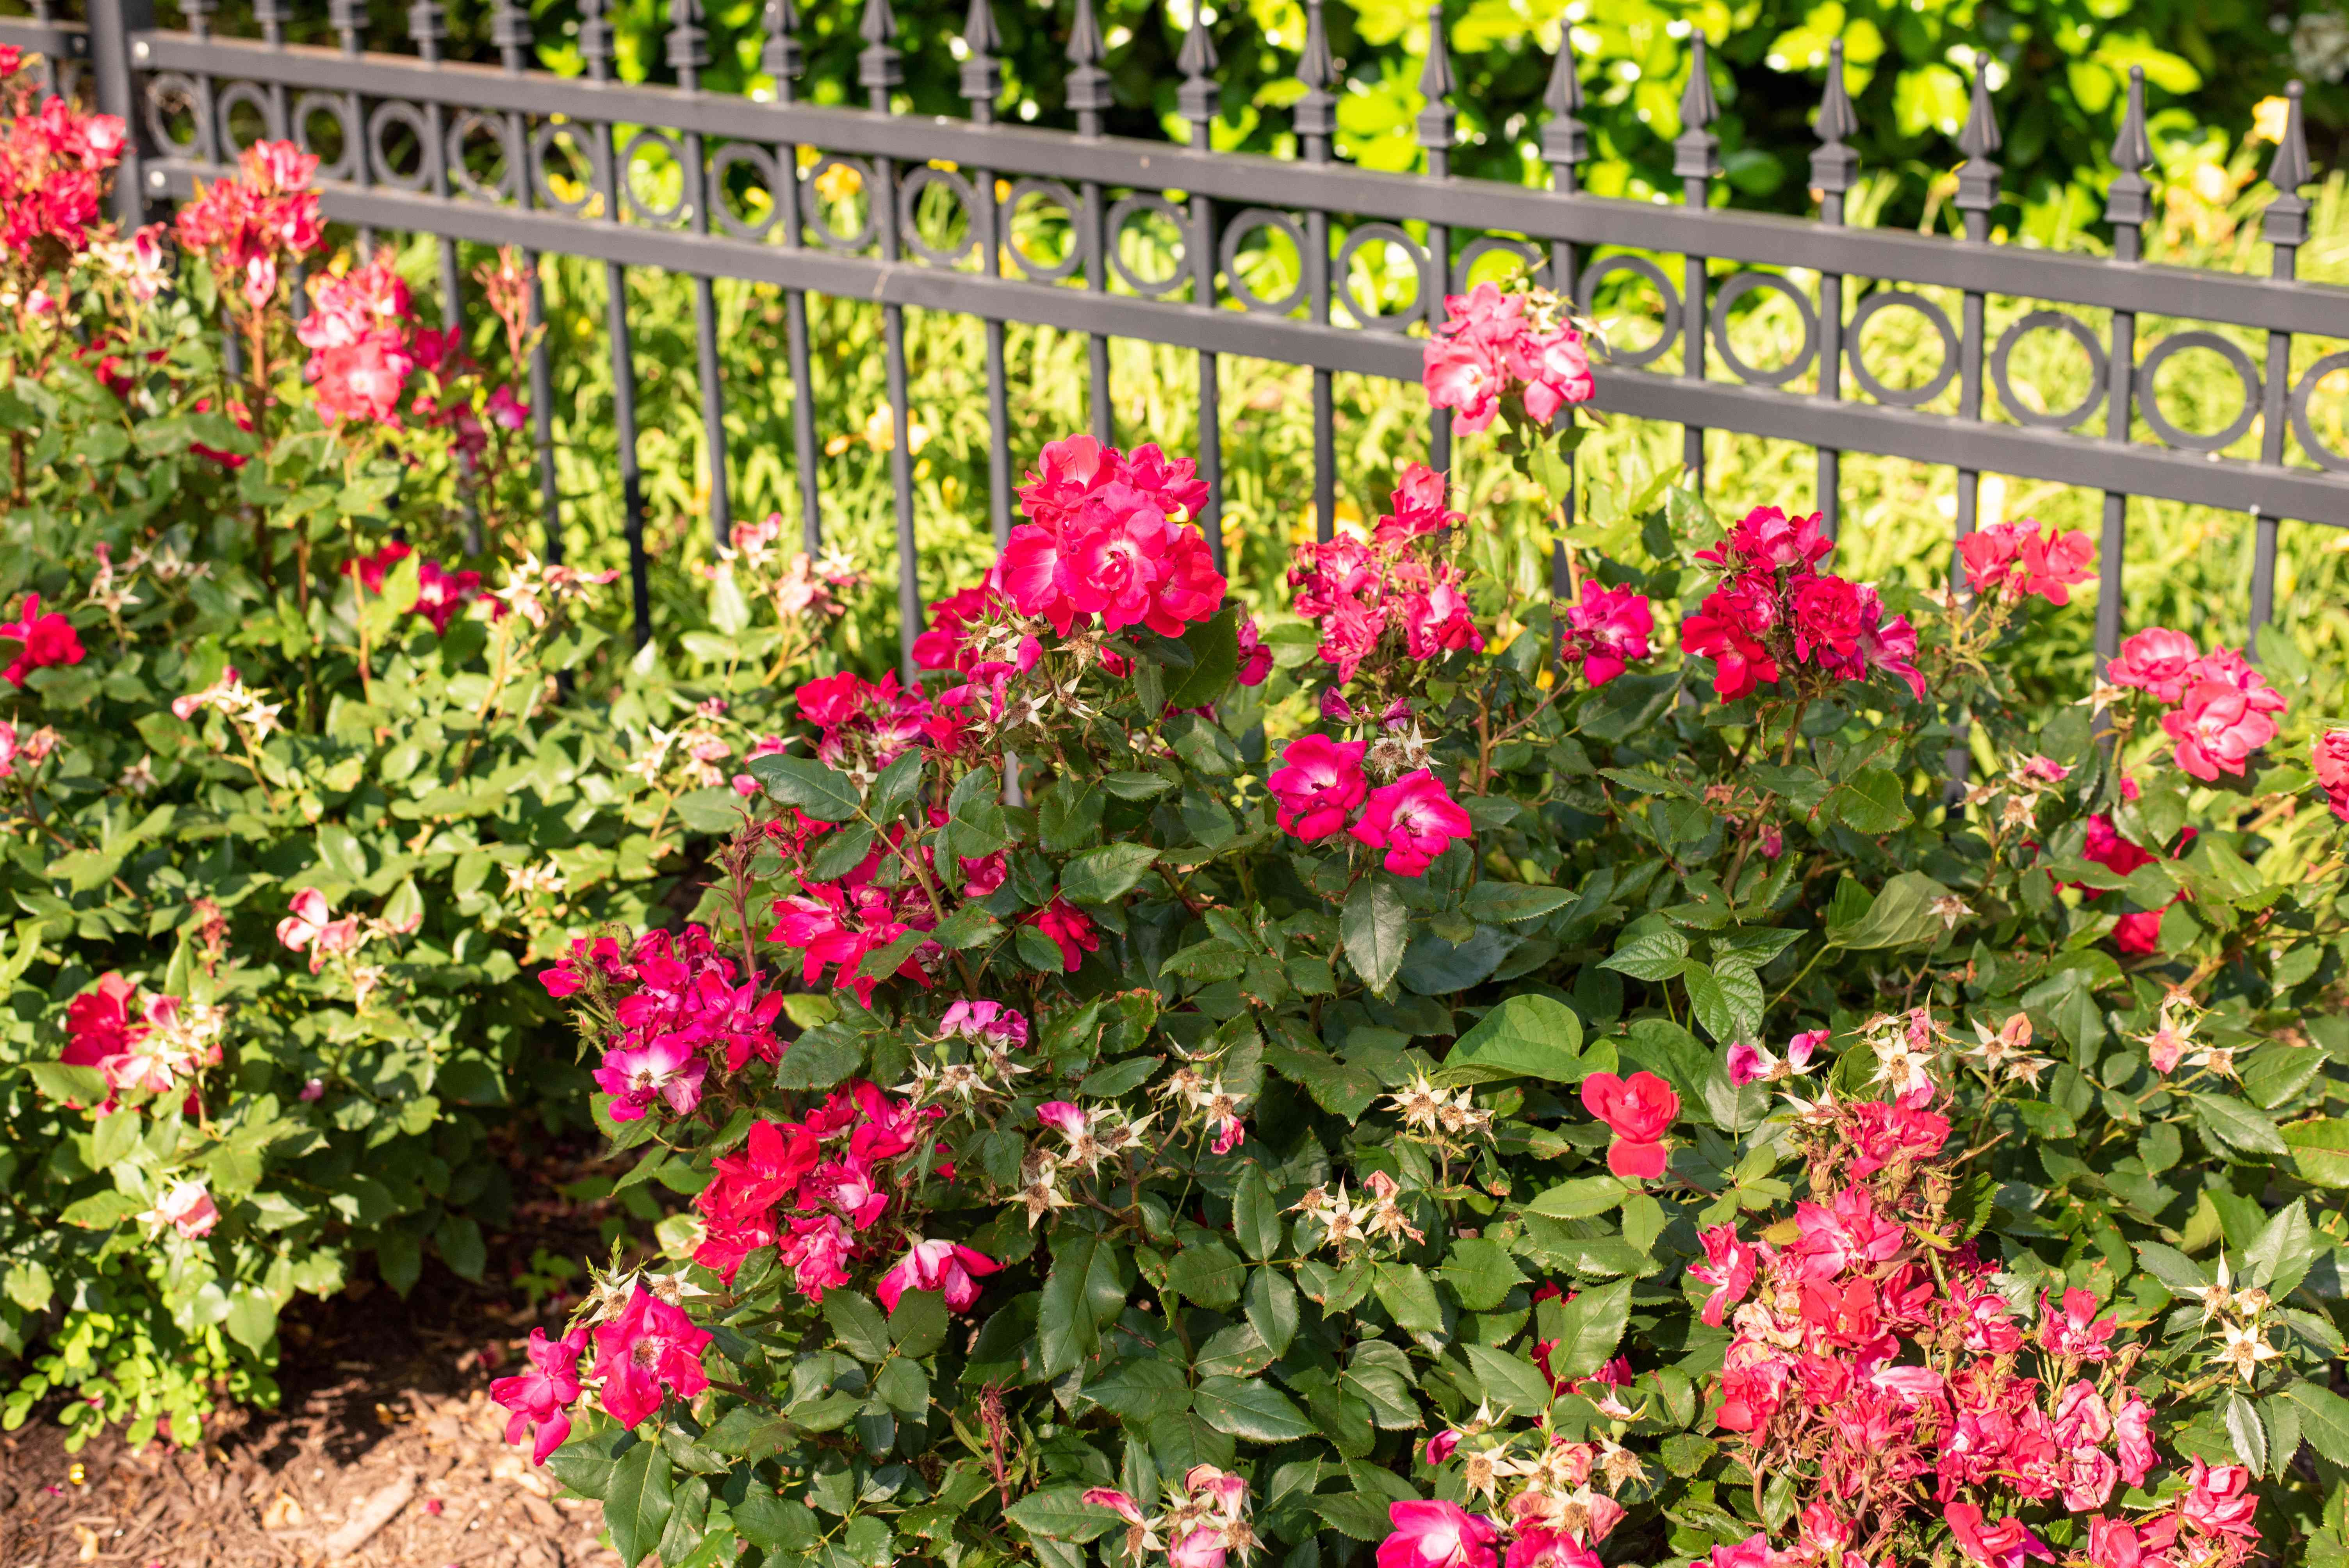 Candy oh rose bushes with bright pink flowers and deadheads near metal fence